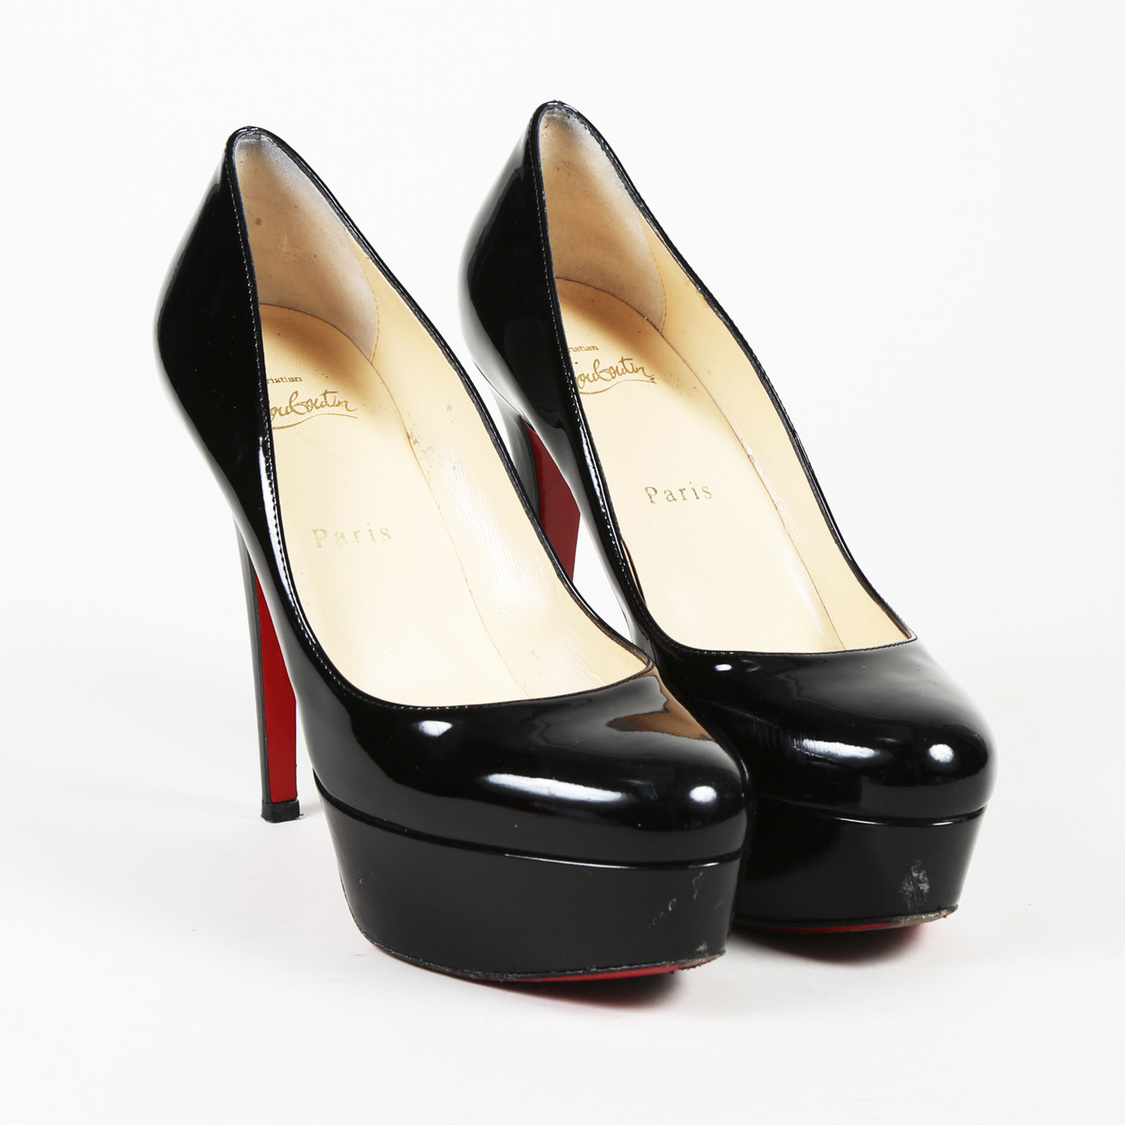 half off f6ae8 e32f1 Details about Christian Louboutin Patent Leather